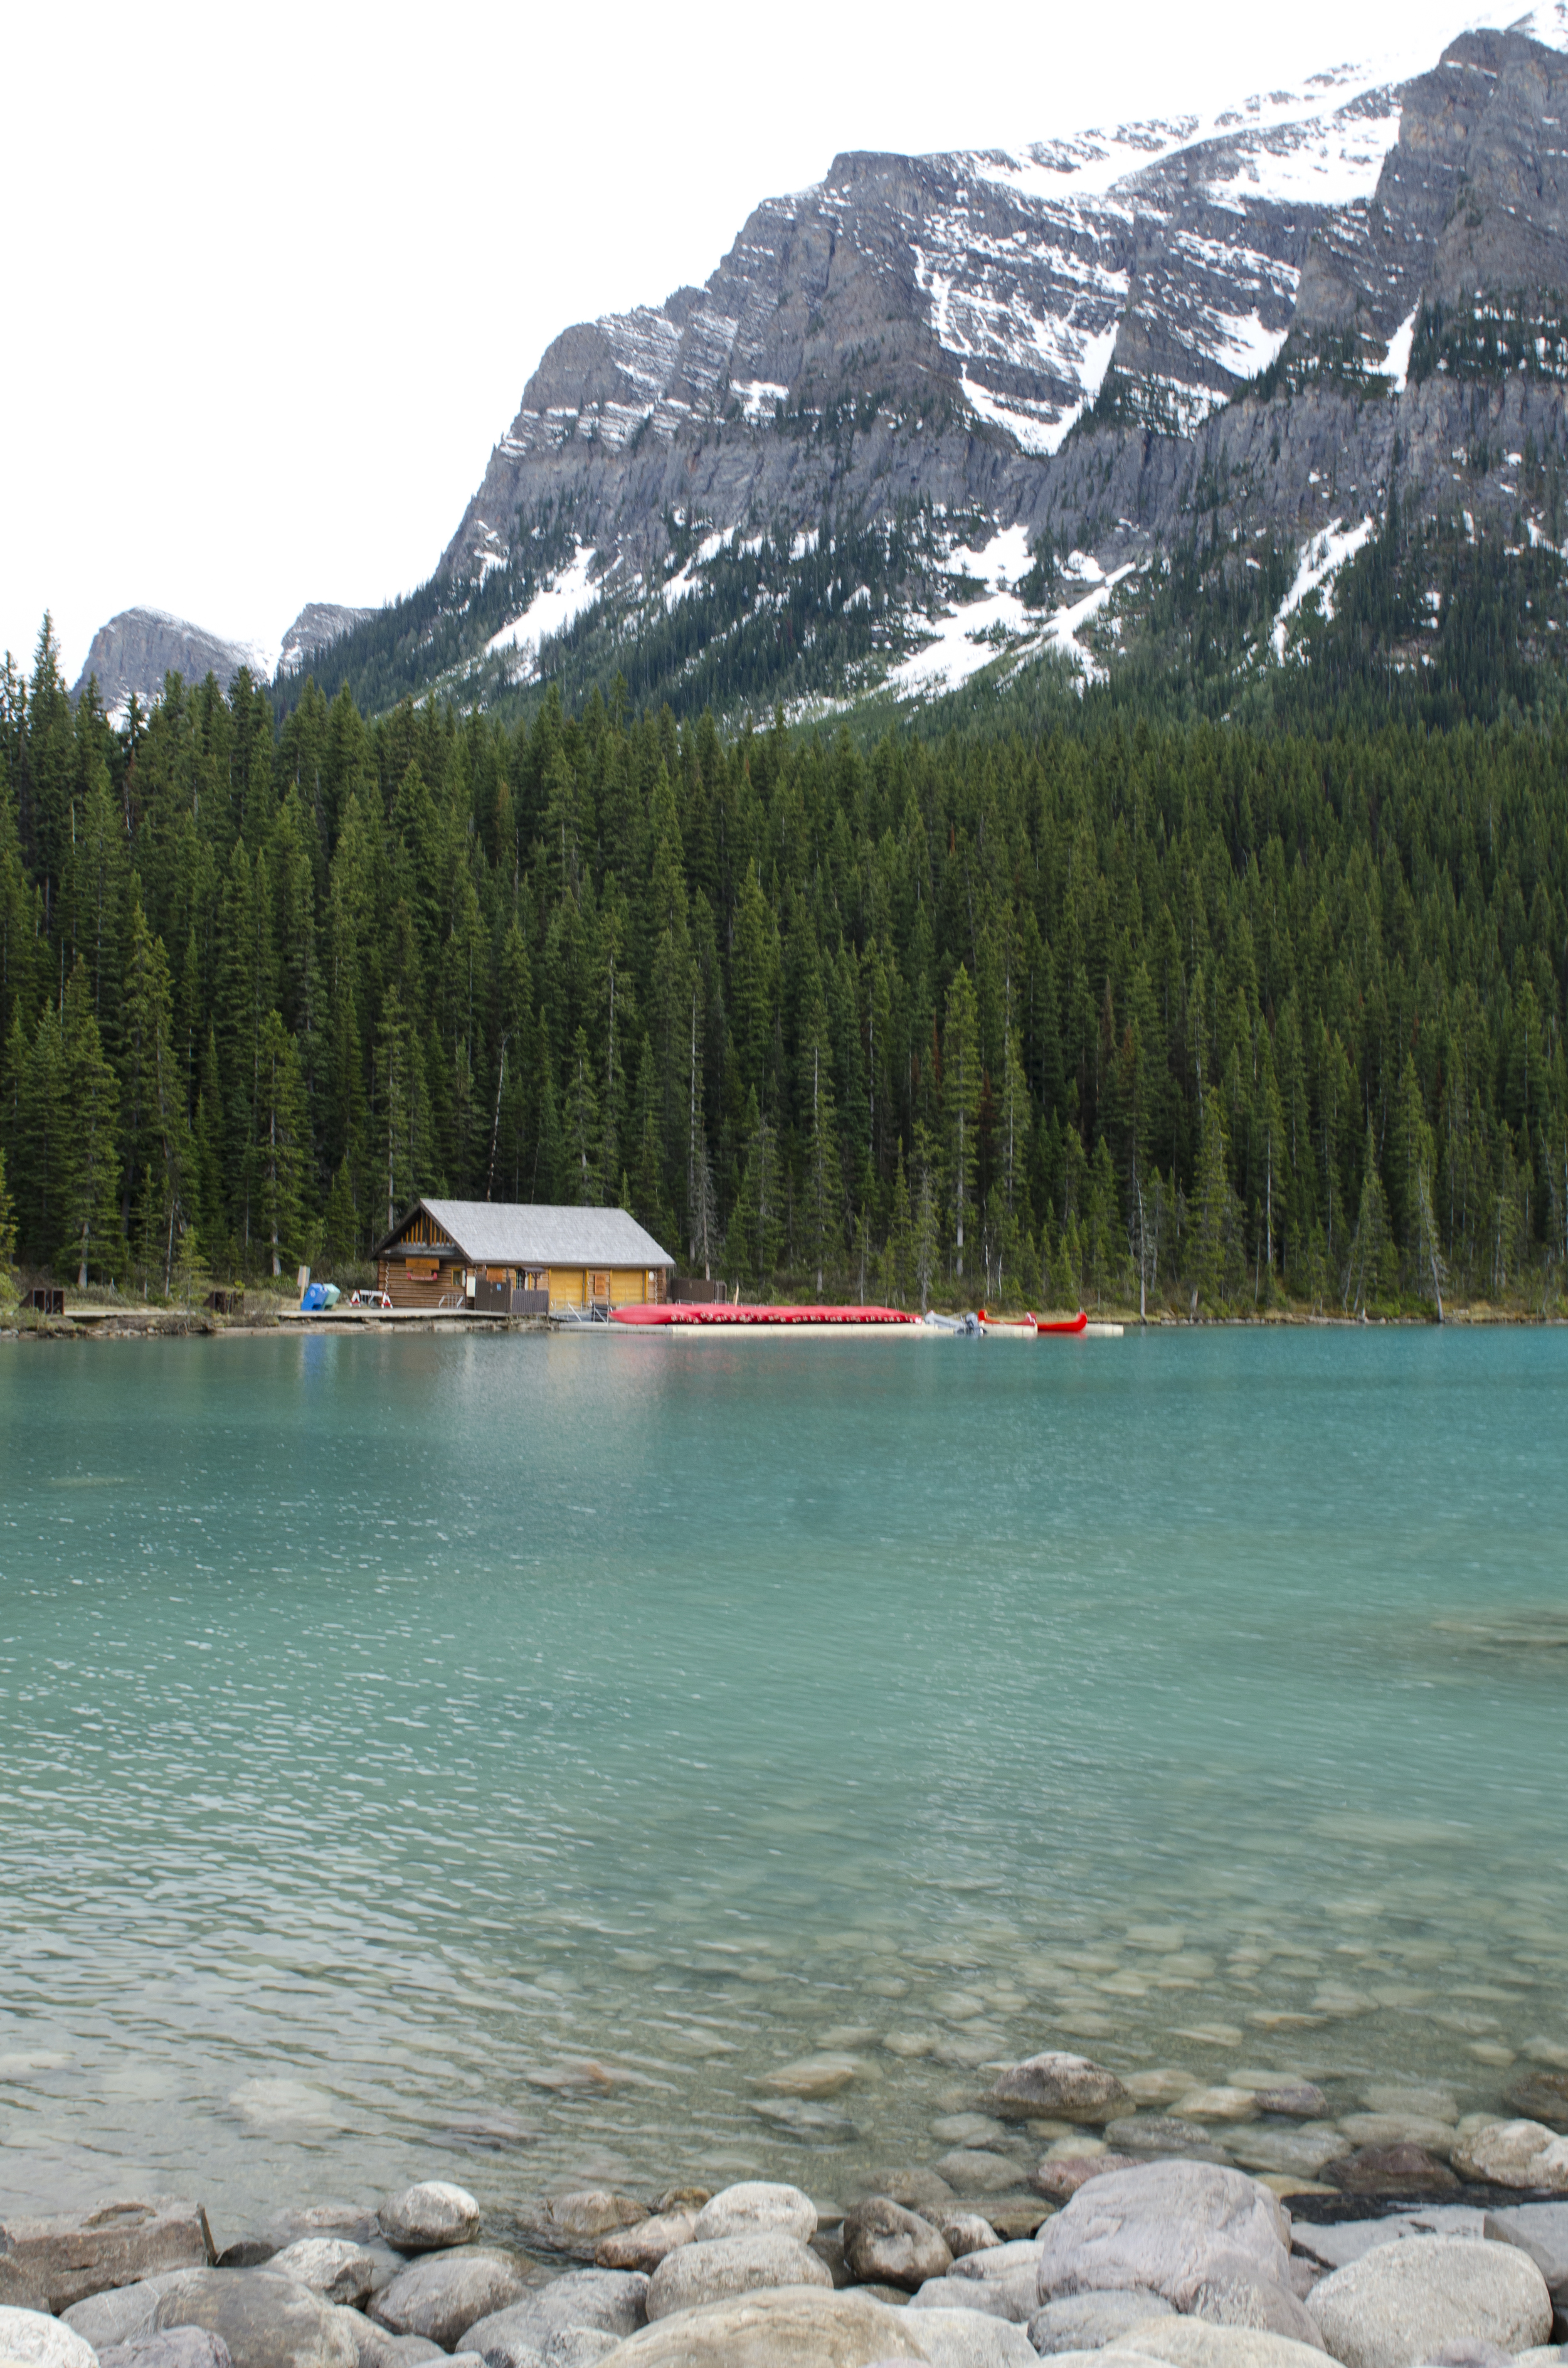 On the shores of Lake Louise at last